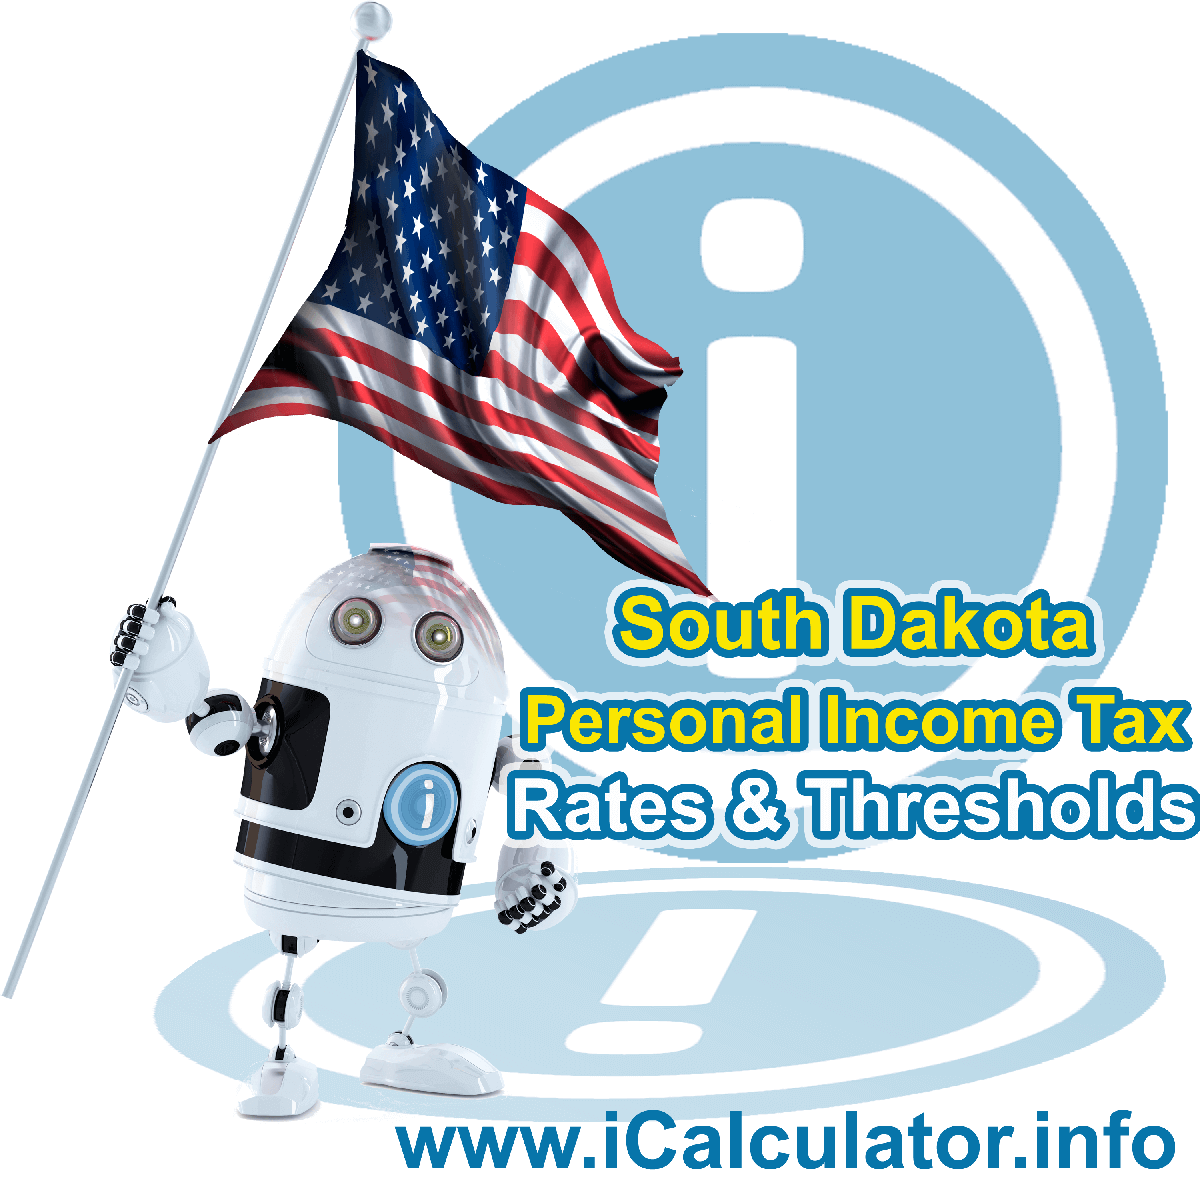 South Dakota State Tax Tables 2016. This image displays details of the South Dakota State Tax Tables for the 2016 tax return year which is provided in support of the 2016 US Tax Calculator